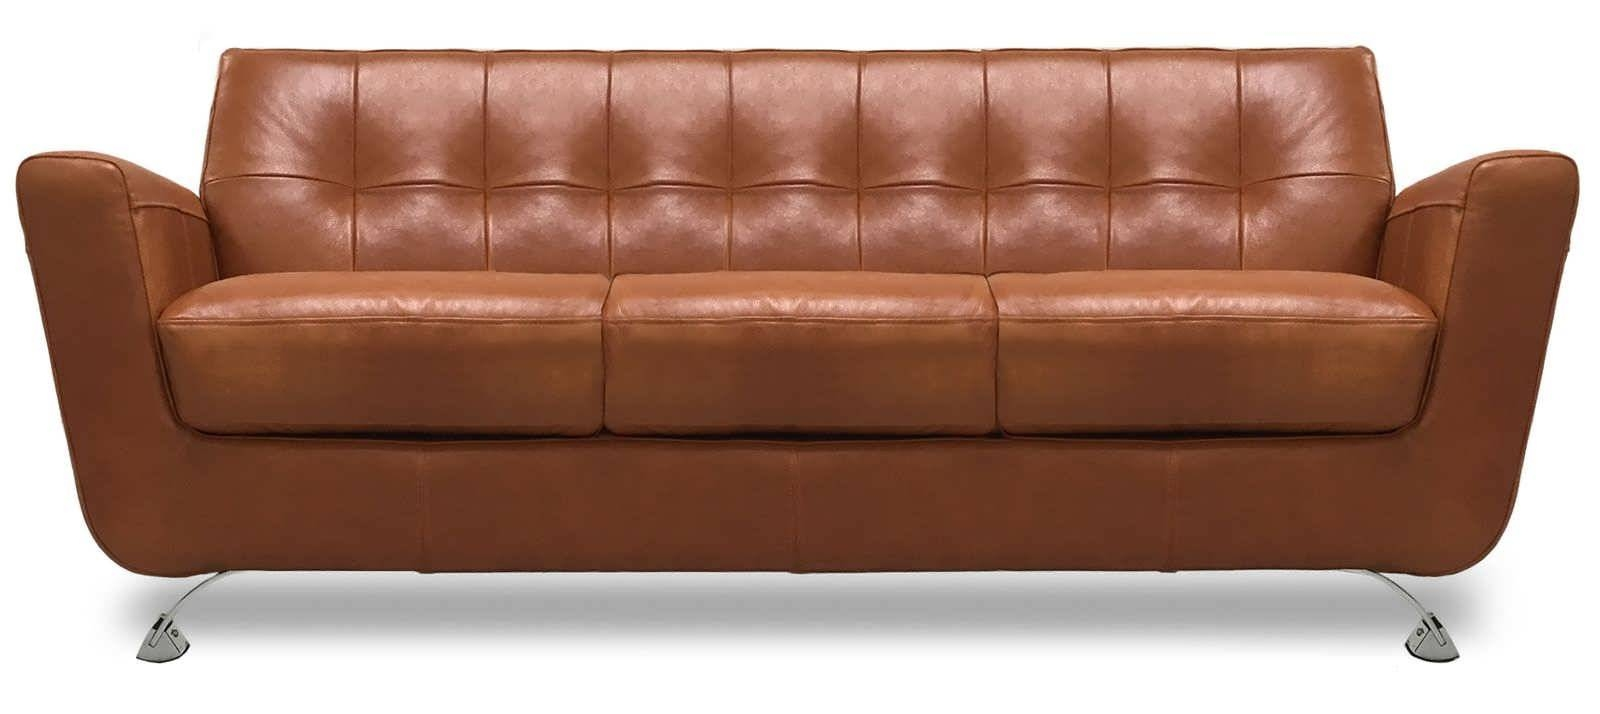 Charmant Sofa : Small Sofas For Small Rooms Grey Deep Sofa Small Love Couch  Throughout Narrow Depth